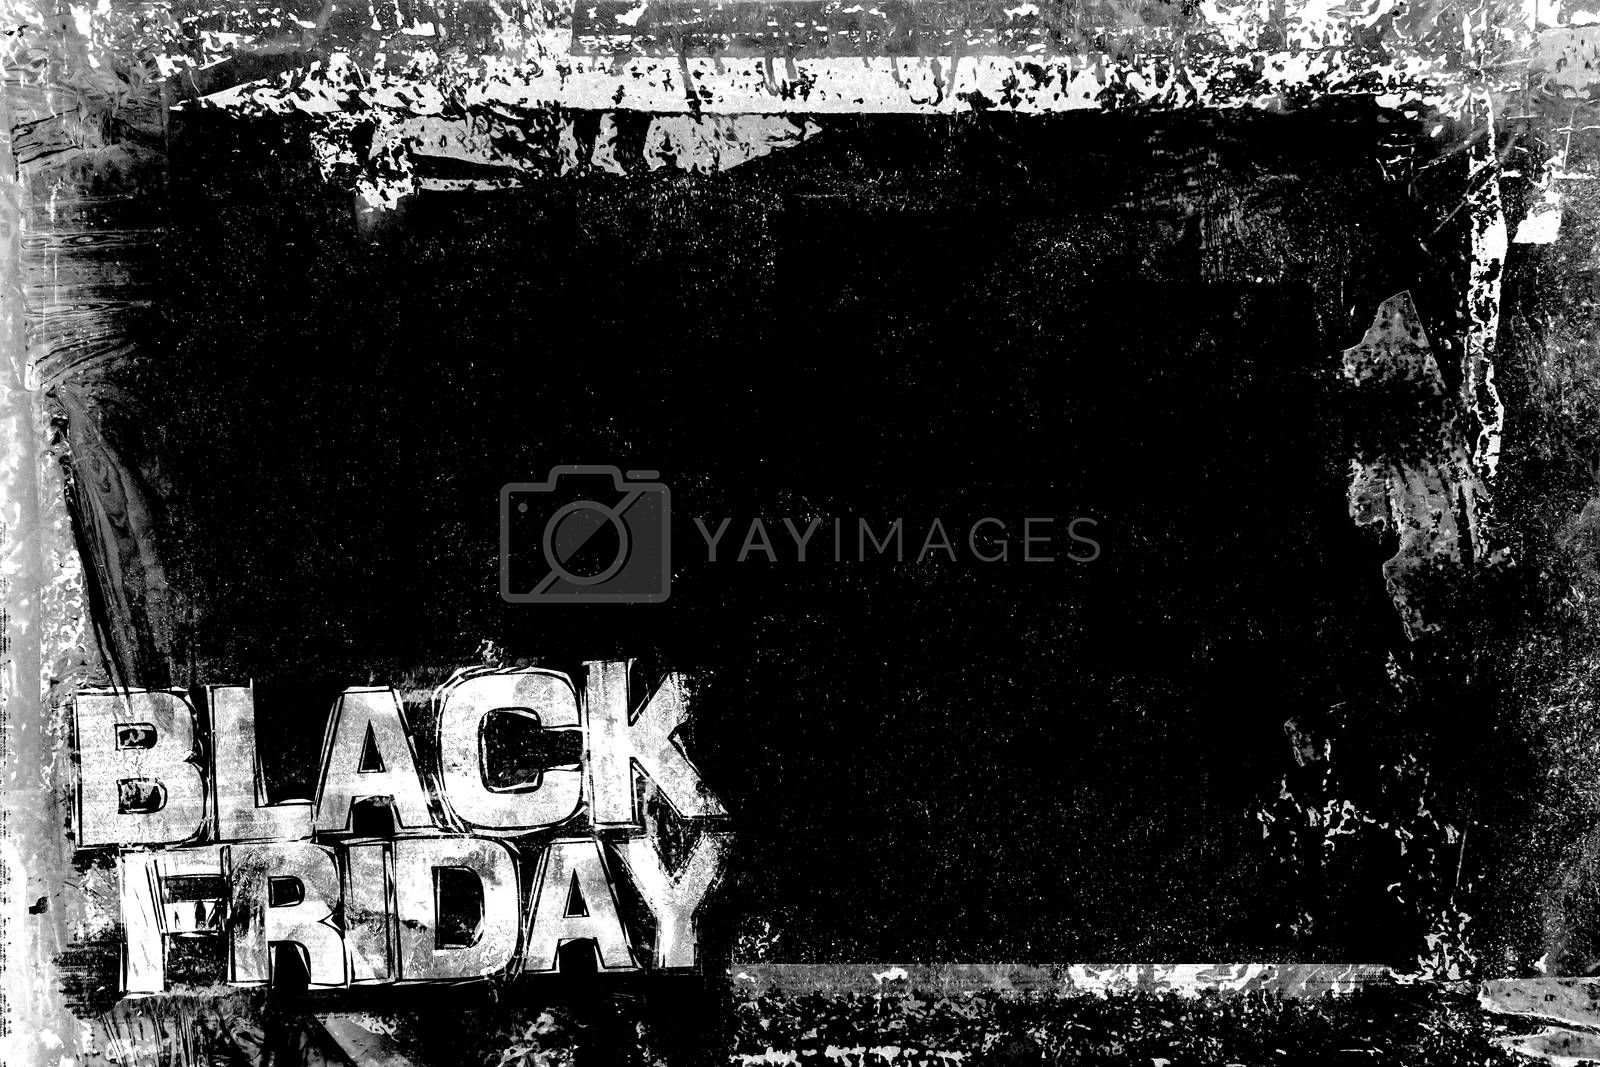 Black Friday Grunge Background with grungy frame and remains of scotch tape and cellophane. Fully editable. Dirty artistic design element, box, frame for text. Doodle frame.